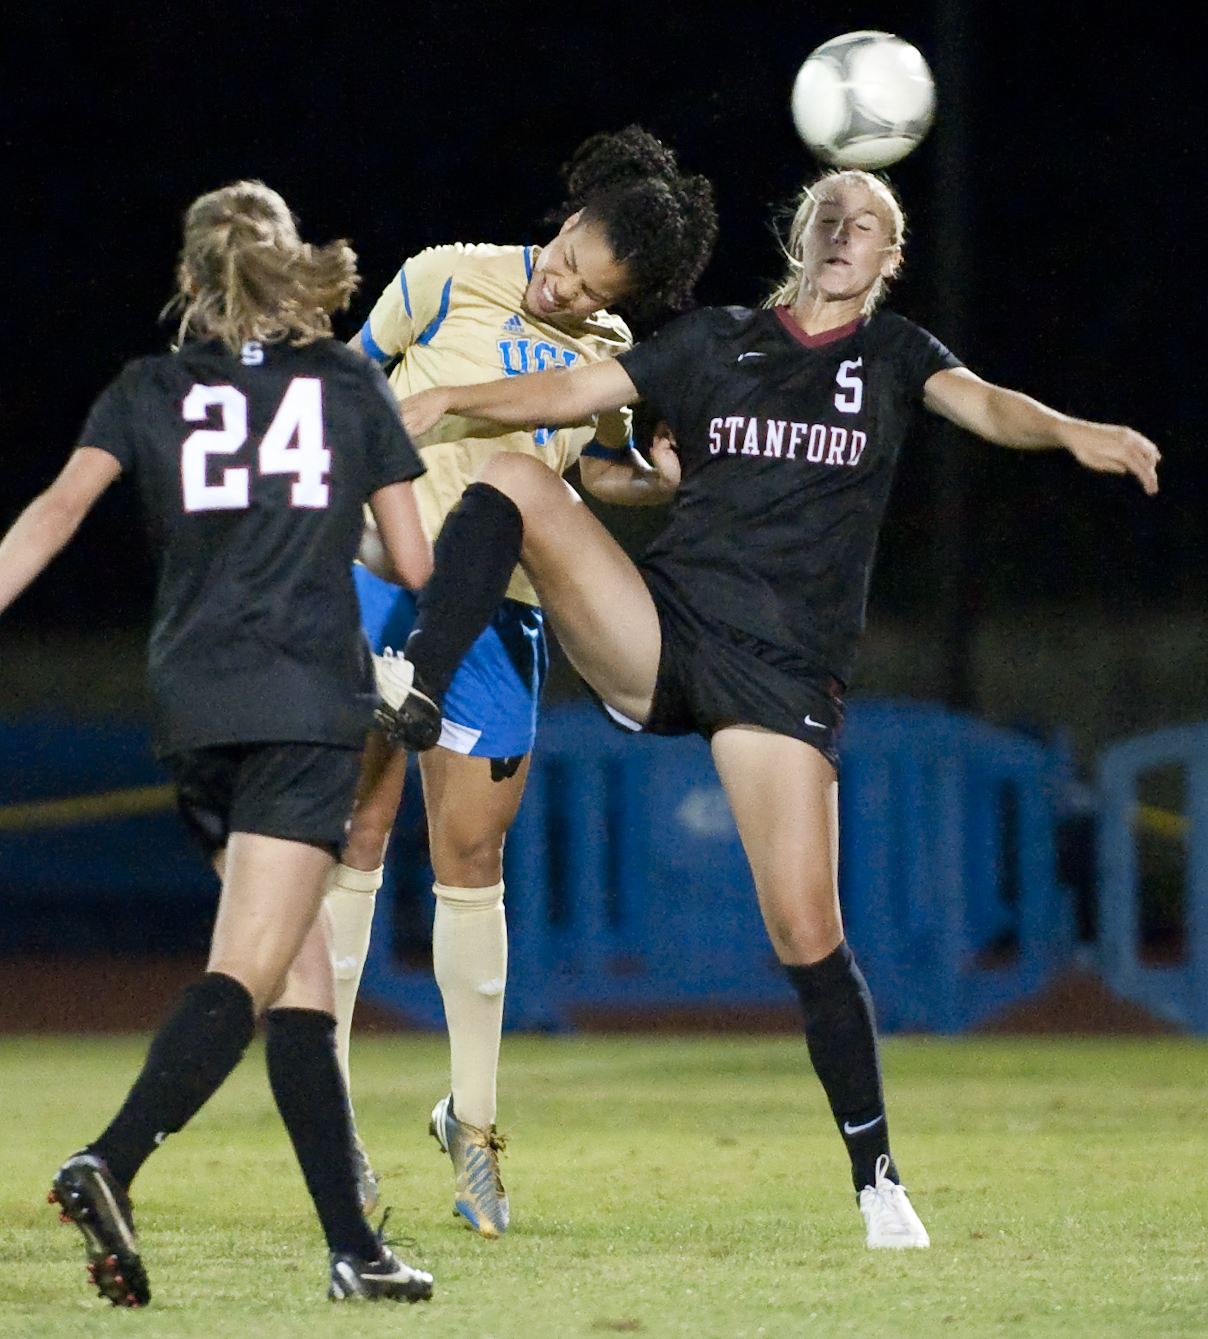 Senior defender Lucretia Lee and the UCLA women's soccer team will travel to Stanford this weekend for the Elite Eight.